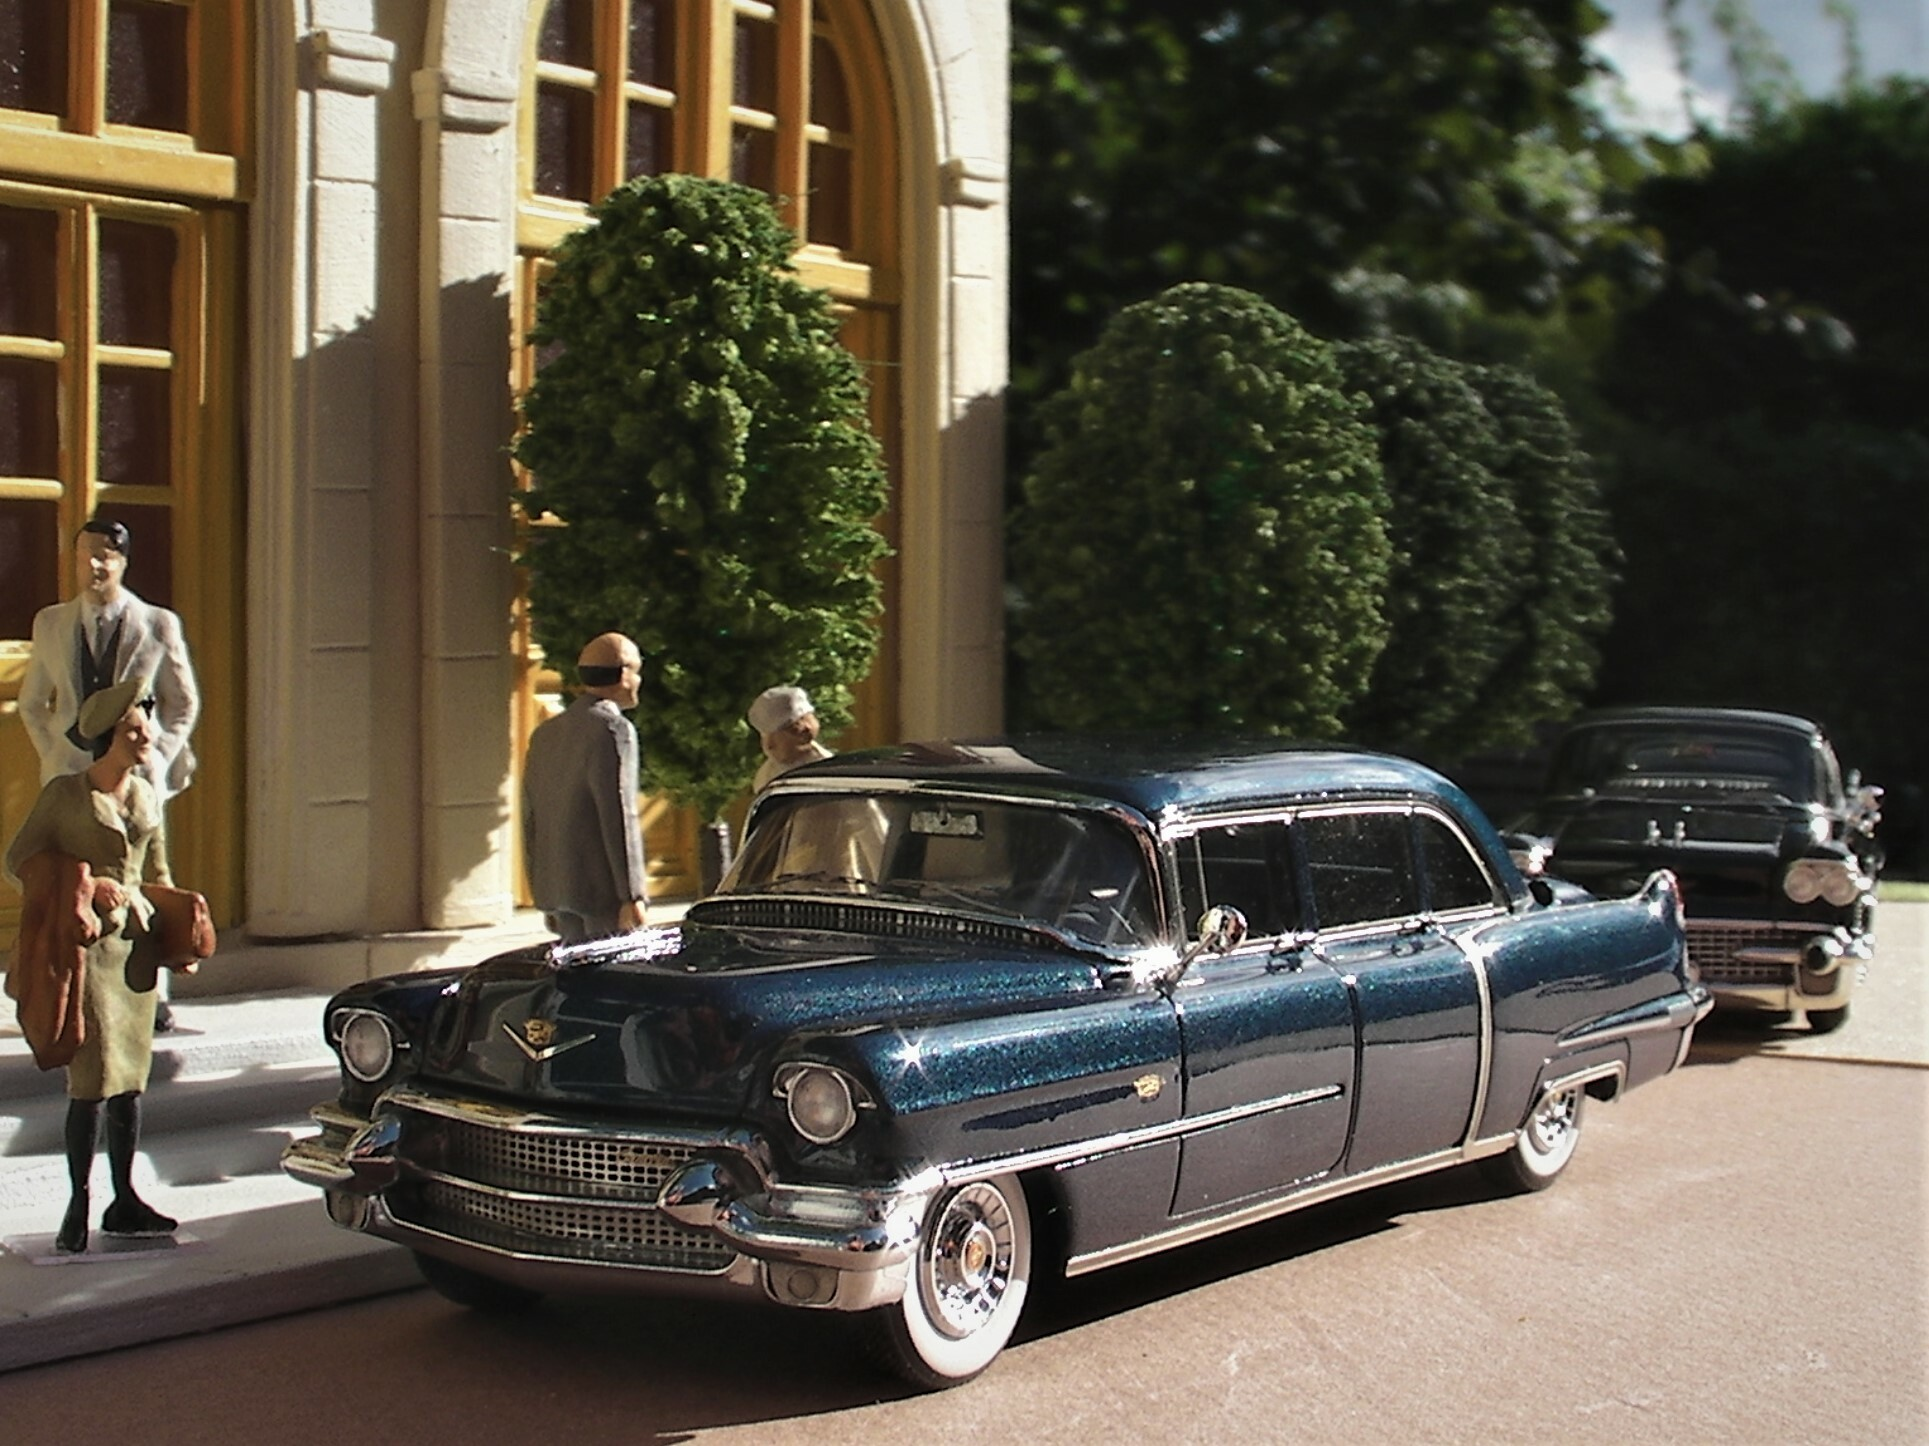 Cadillac 56 Serries 75 Fleetwood Limousine (4)